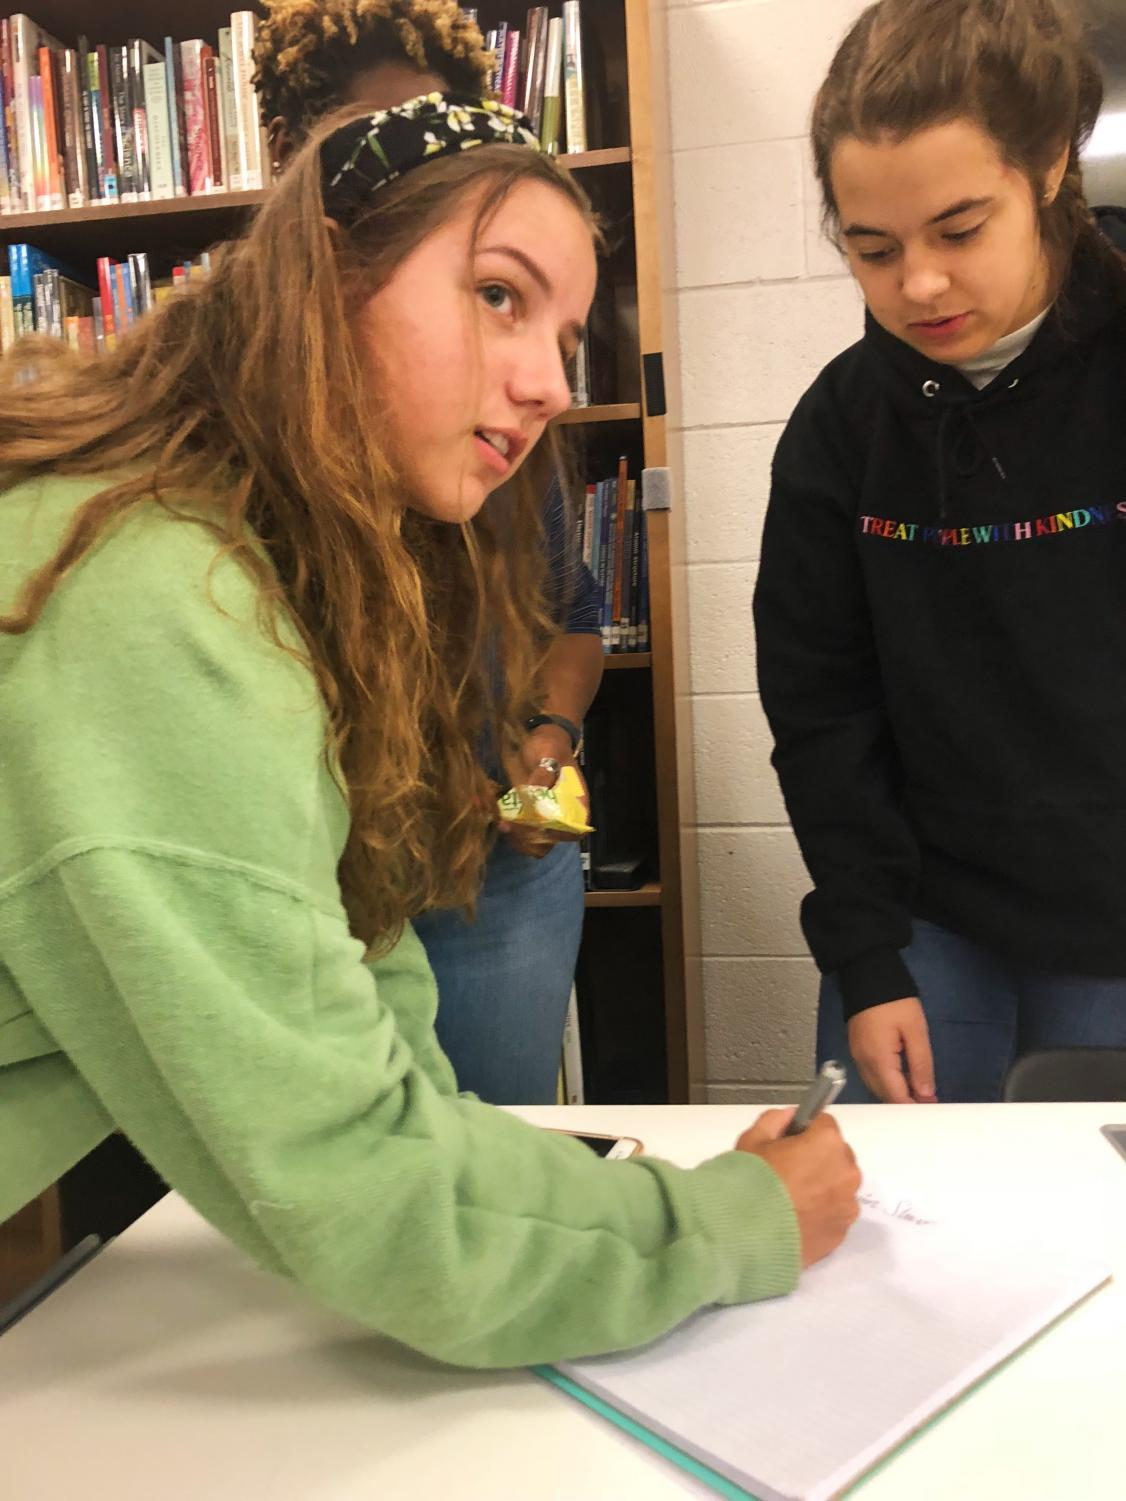 Student Council executive secretary Emma Guglielmo takes attendence at the last meeting before homecoming as they plan the last minute events for the dance on Saturday. Photo Credit: Smriti Tayal